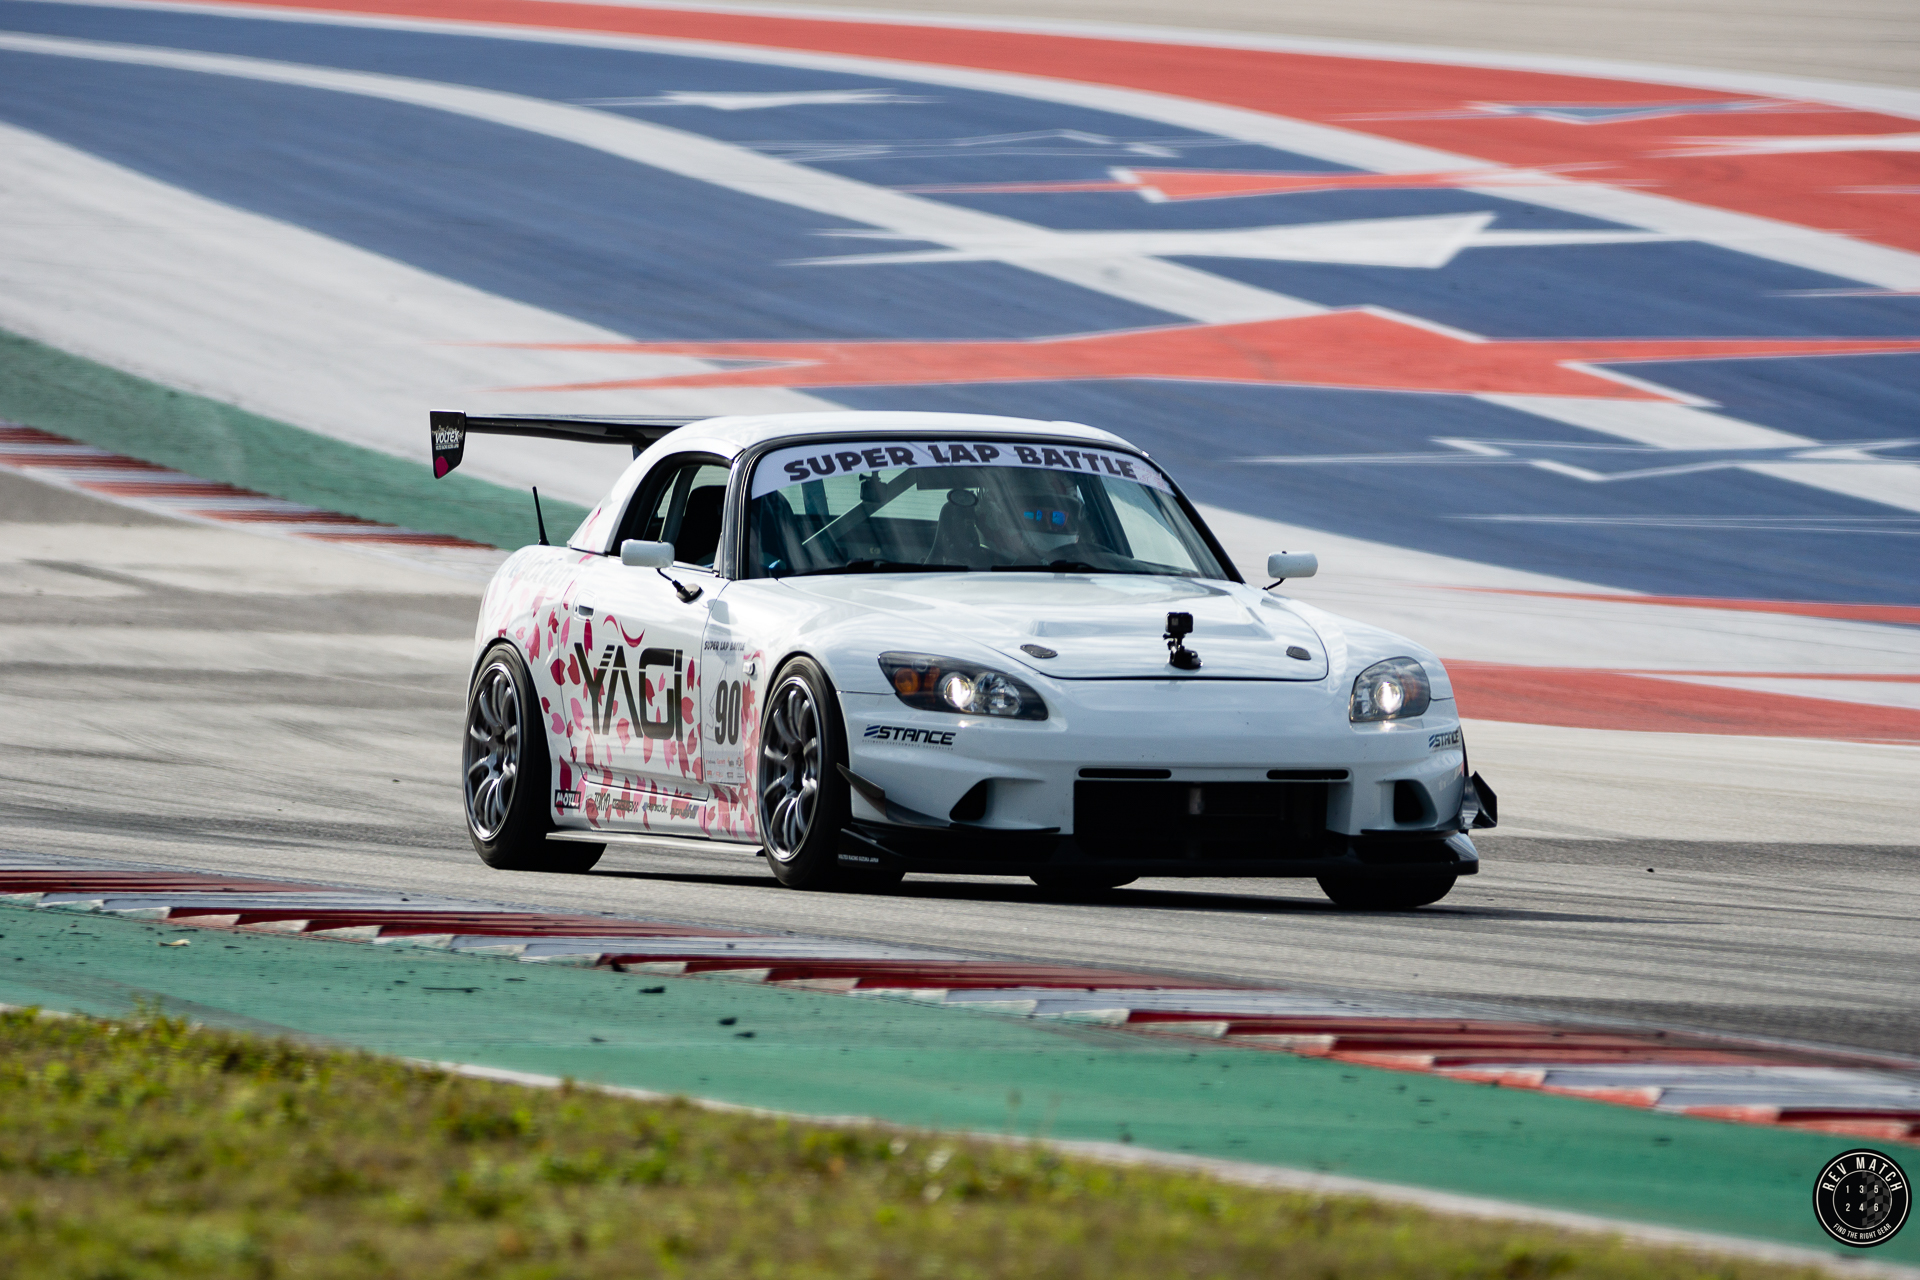 Super Lap Battle COTA Rev Match Media-340.jpg